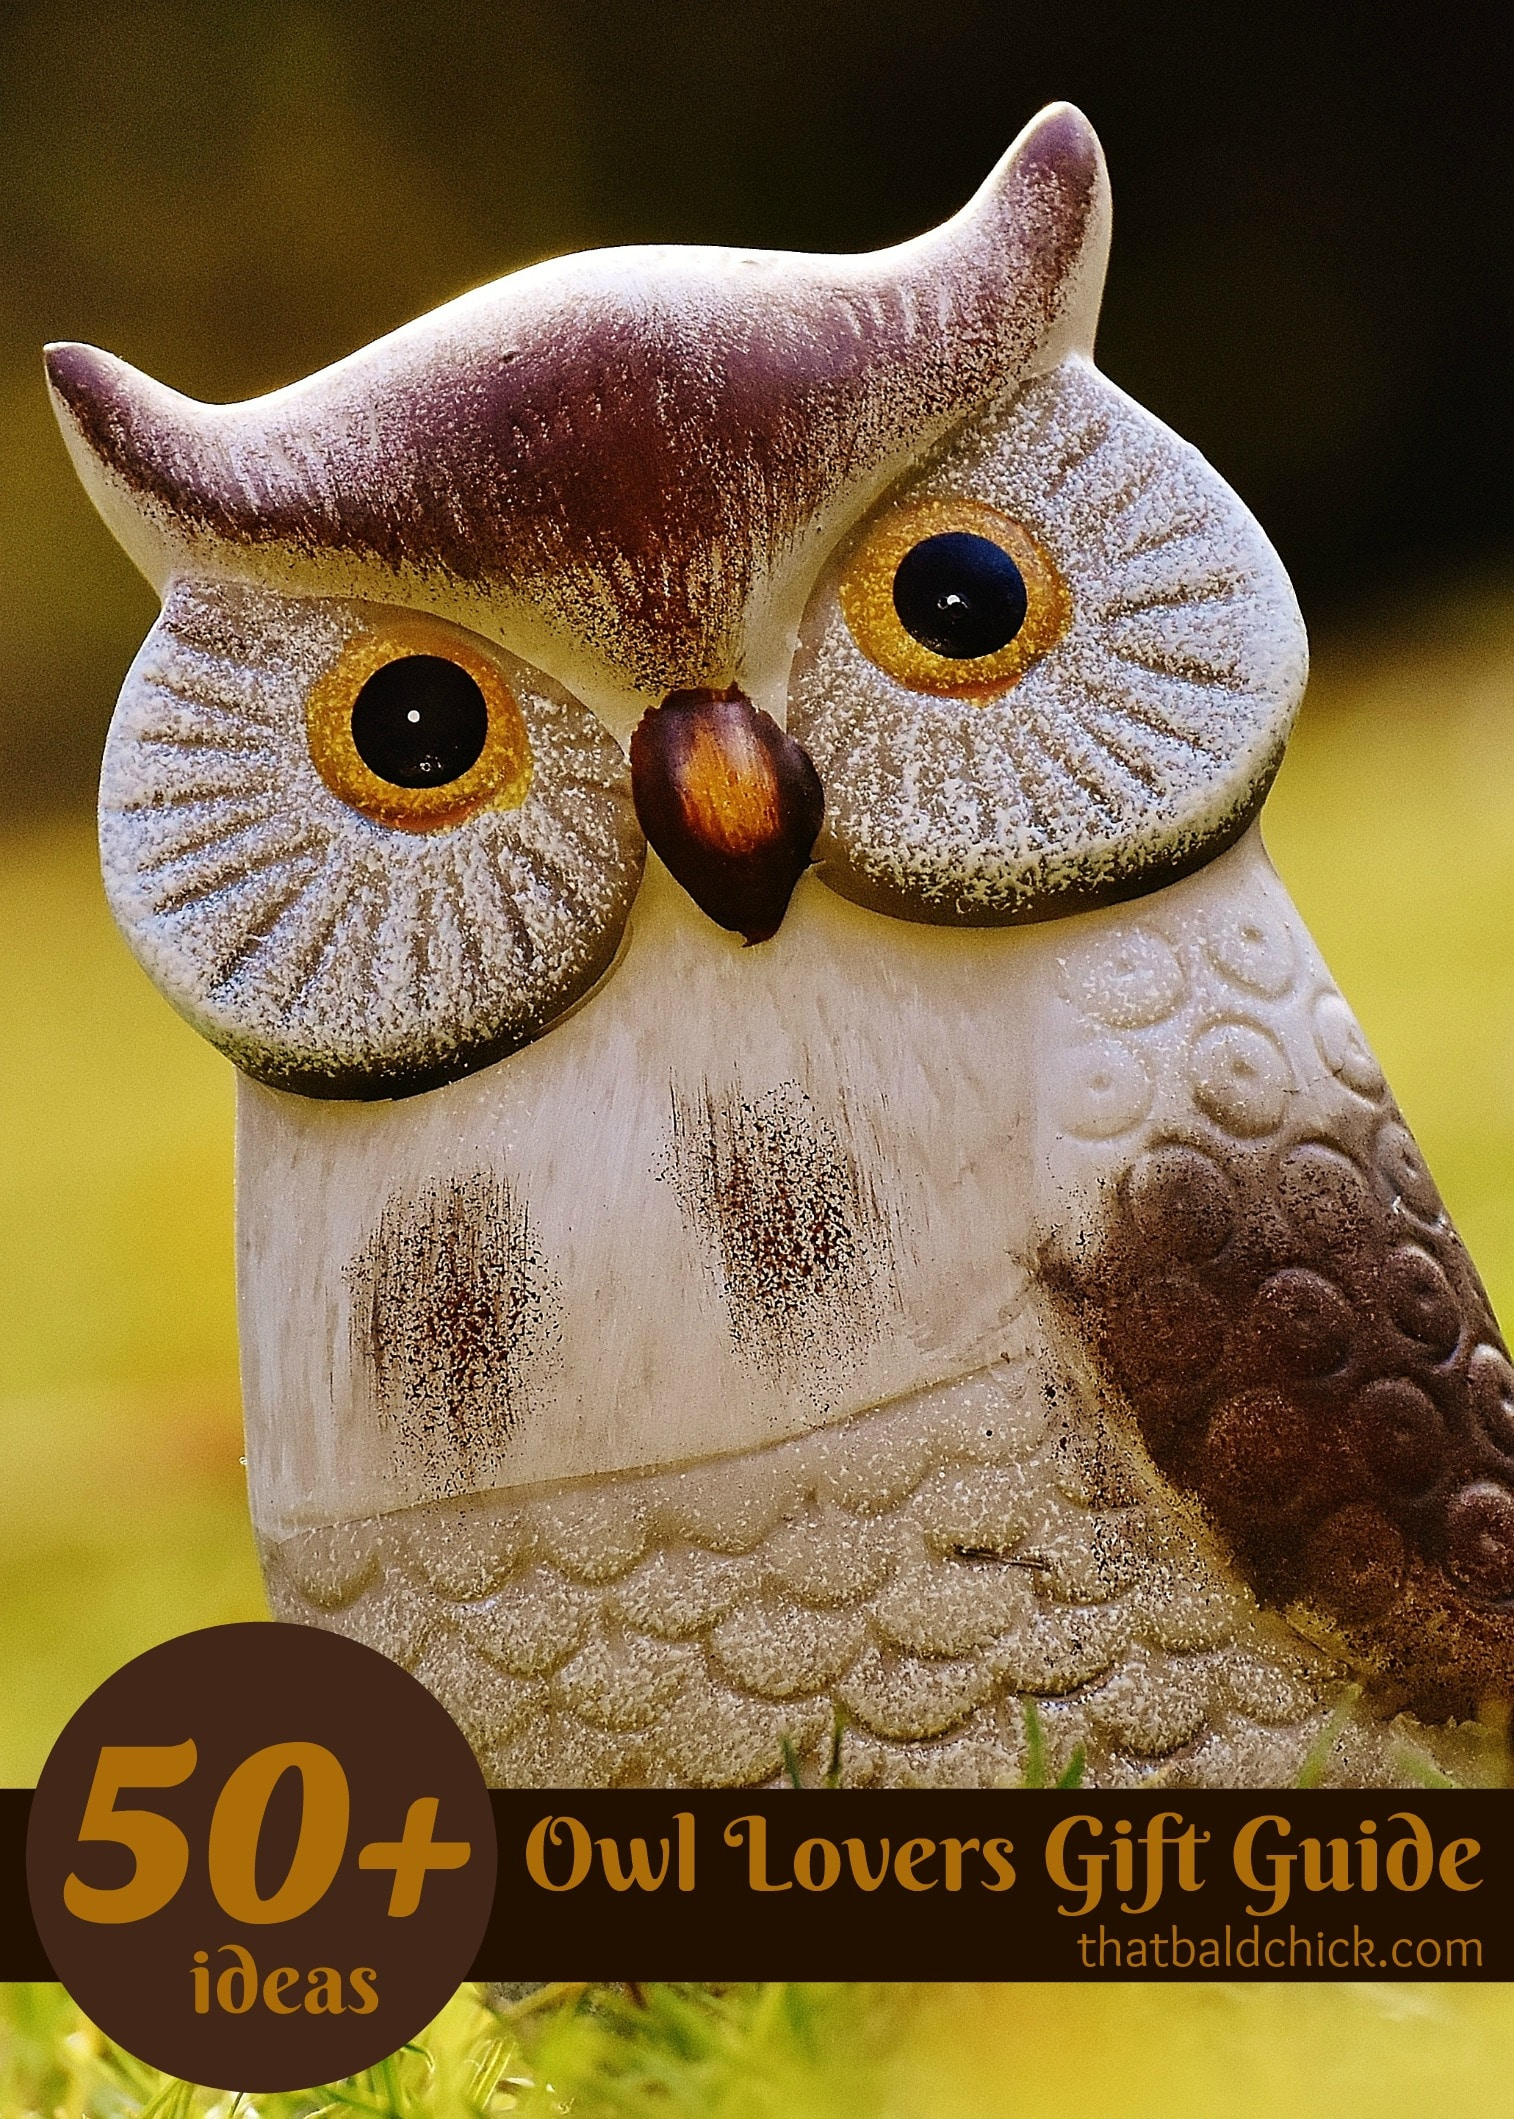 Owl Lovers Gift Guide